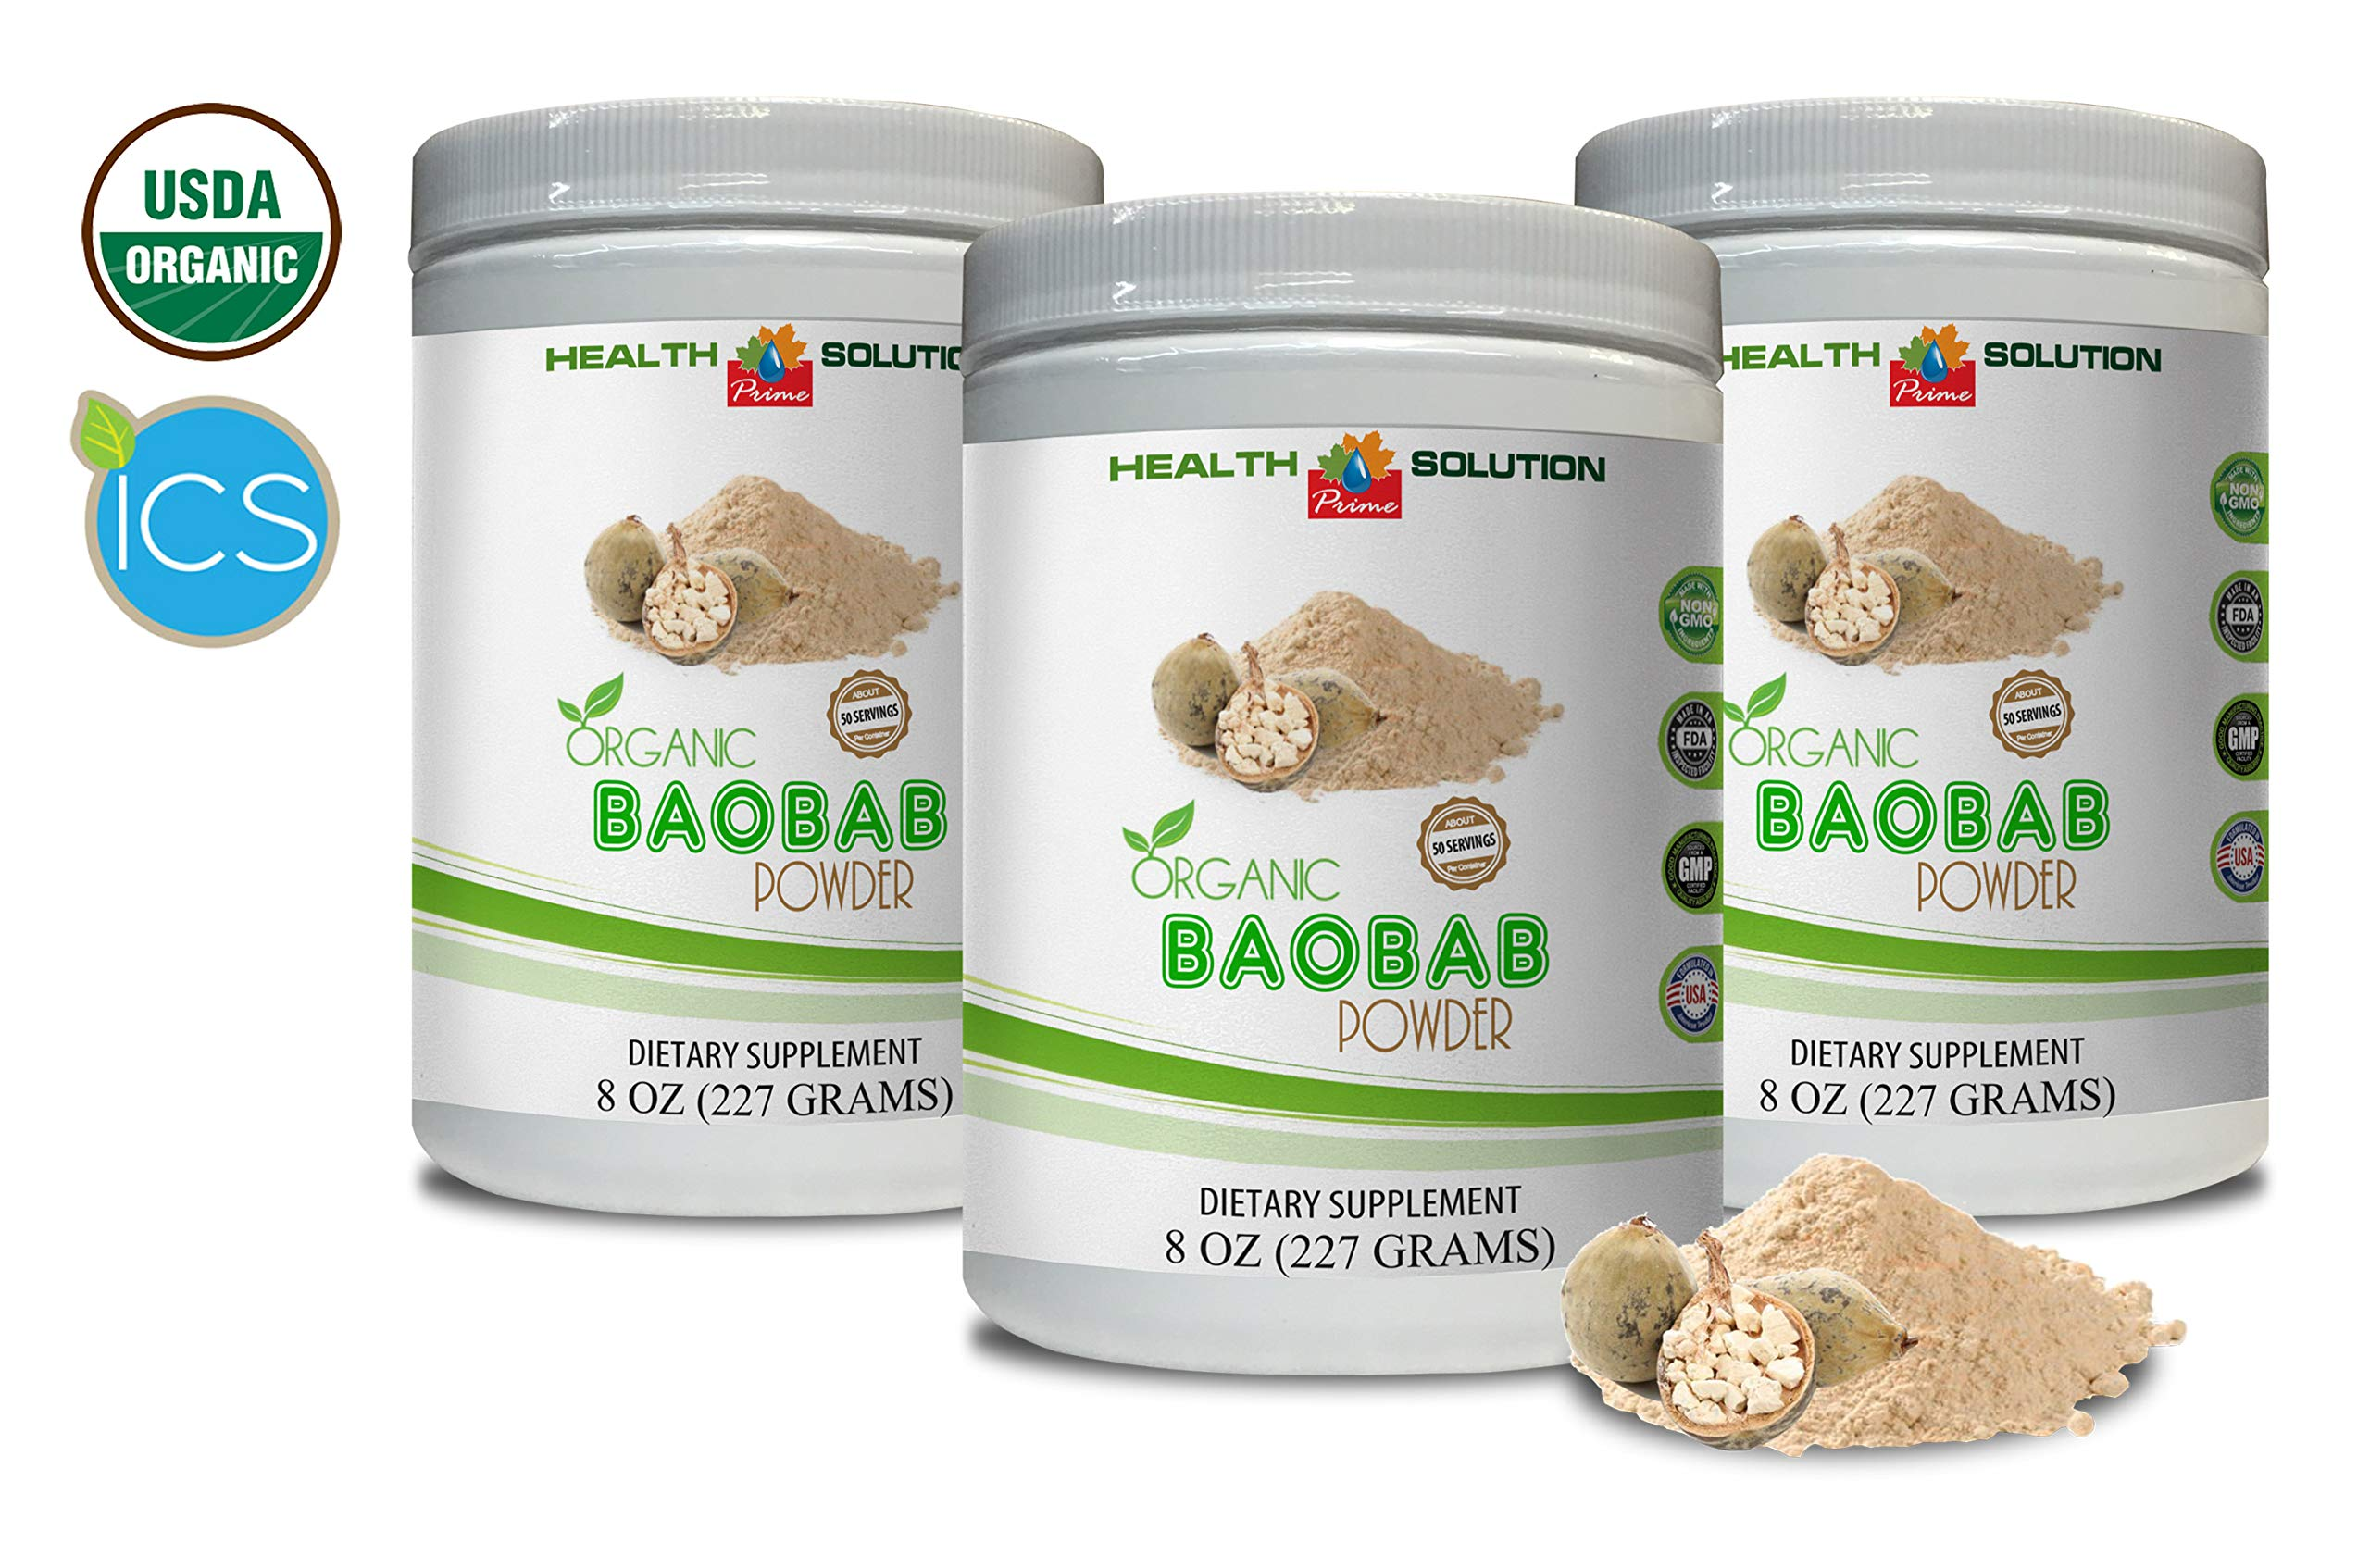 antioxidant multivitamin - Organic Baobab Powder - Digestion Vitamins - 3 Cans 24 OZ (150 Servings)